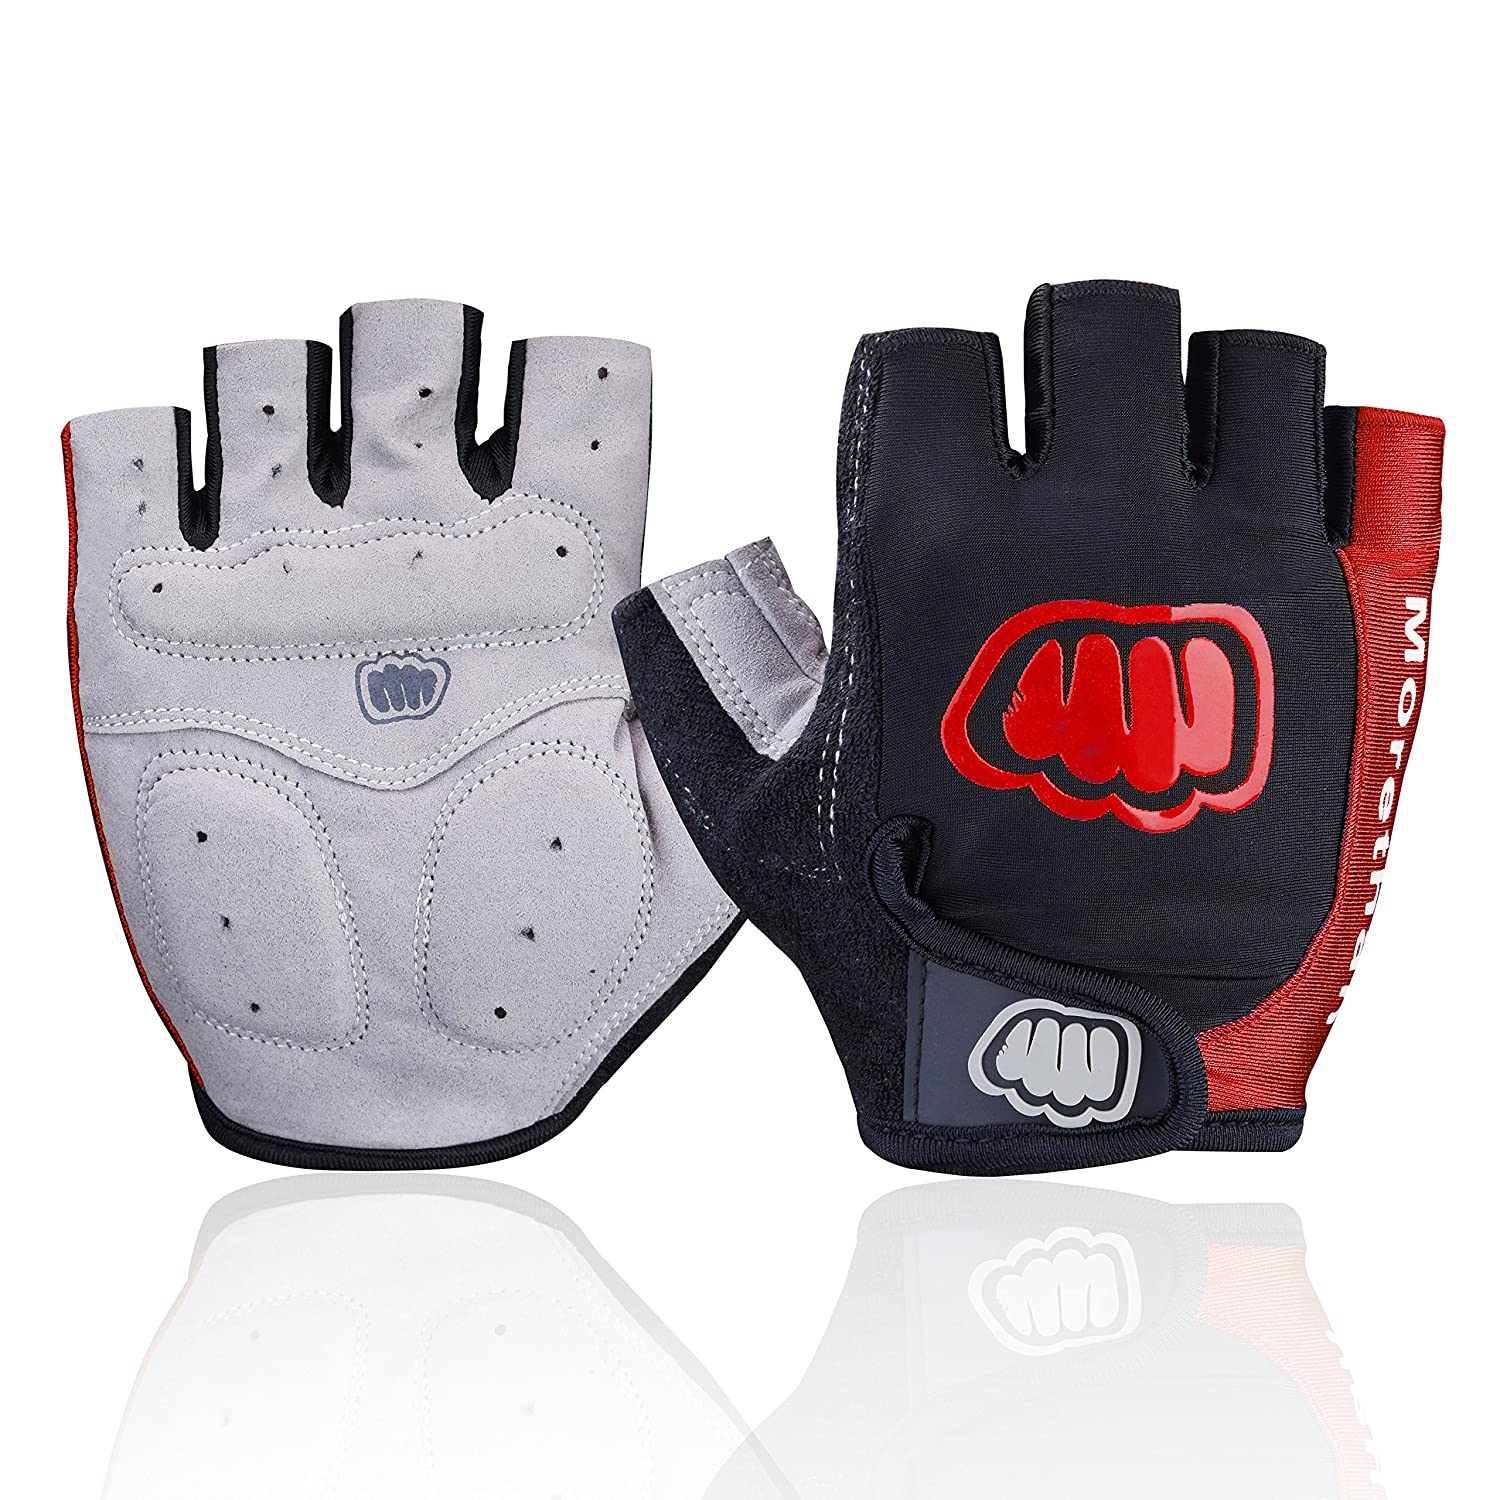 Ultralight Cycling Gloves (Half Finger) - Shockproof Lycra & Anti-Slip - Absorbing Silica Gel Grip, Mountain Road Bike Gloves Men/Women Morethan